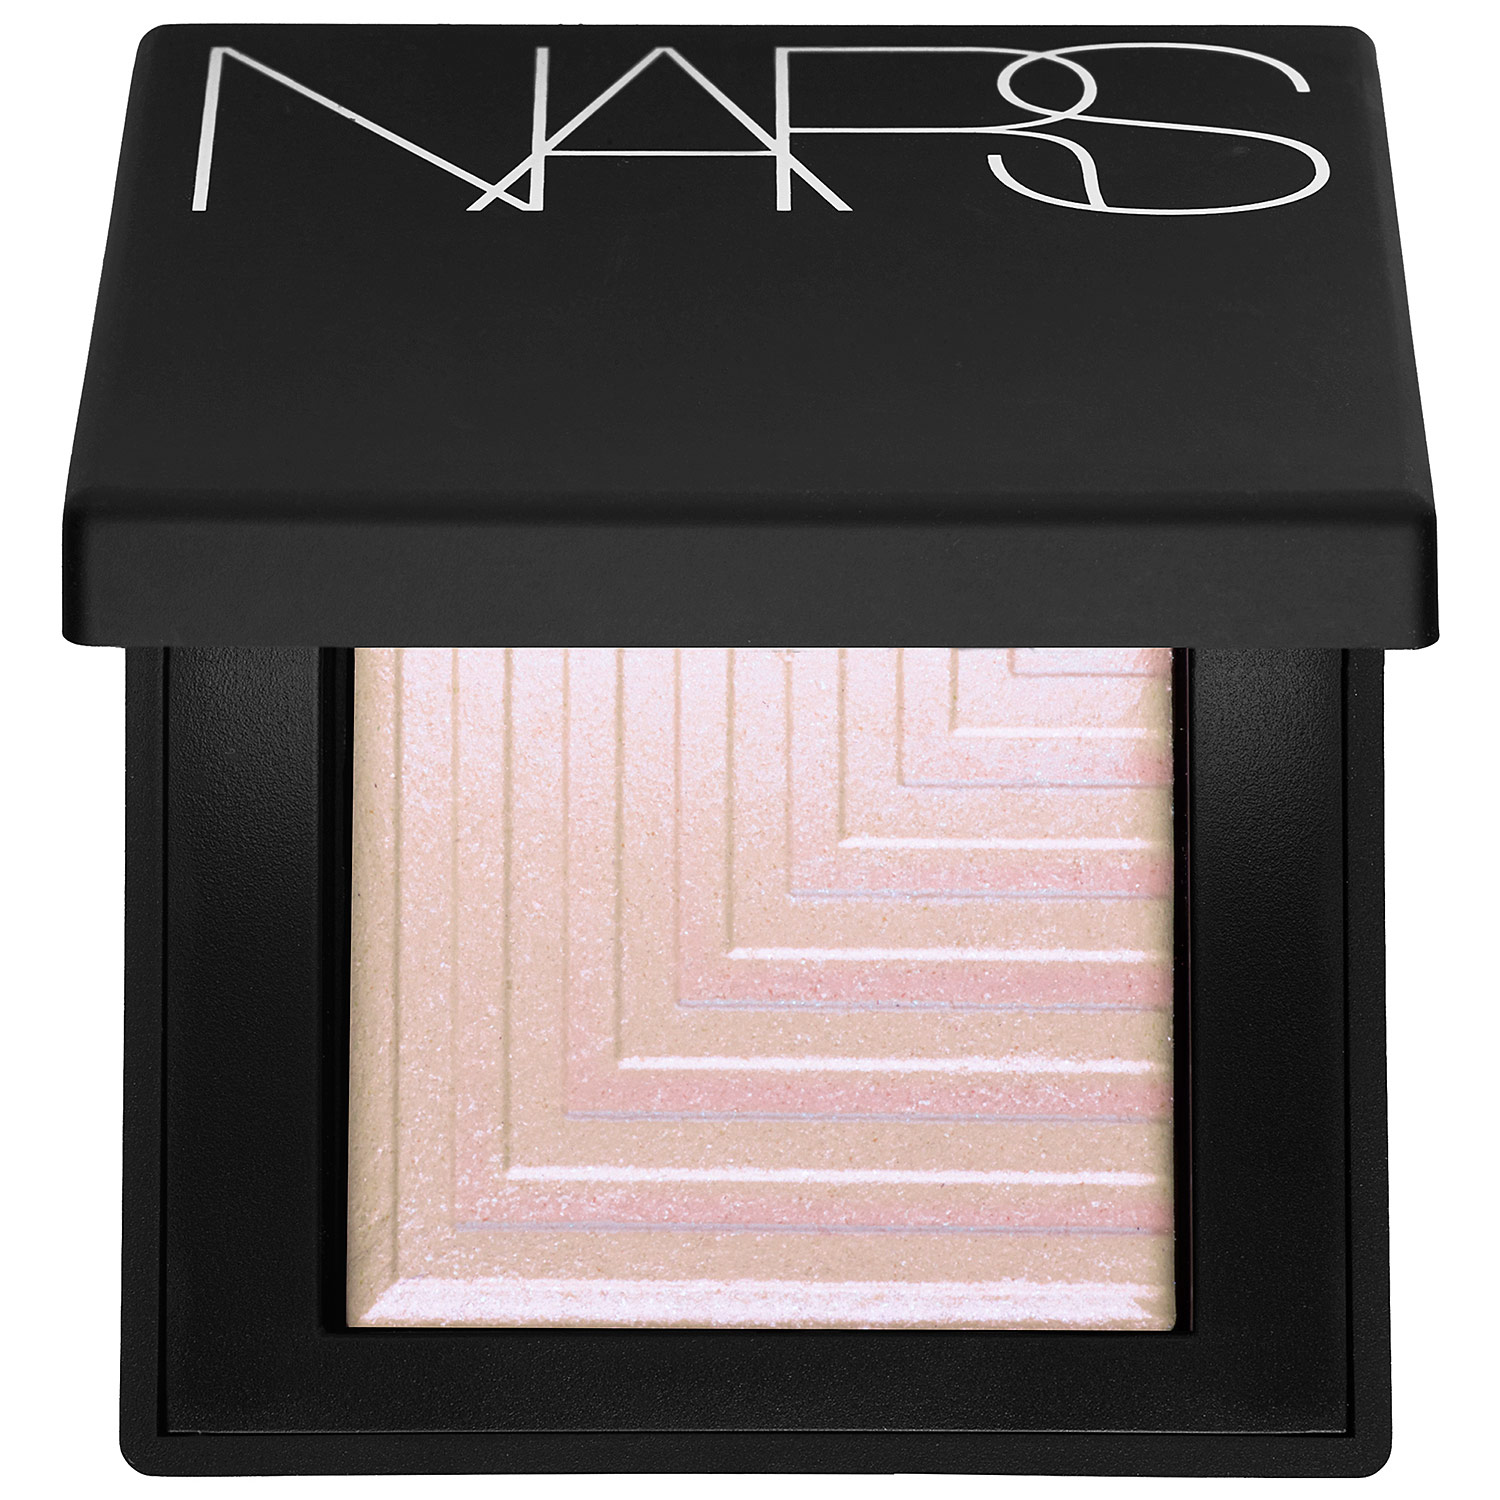 Very Fair Complexions: Nars Dual-Intensity Eyeshadow in Cassiopeia